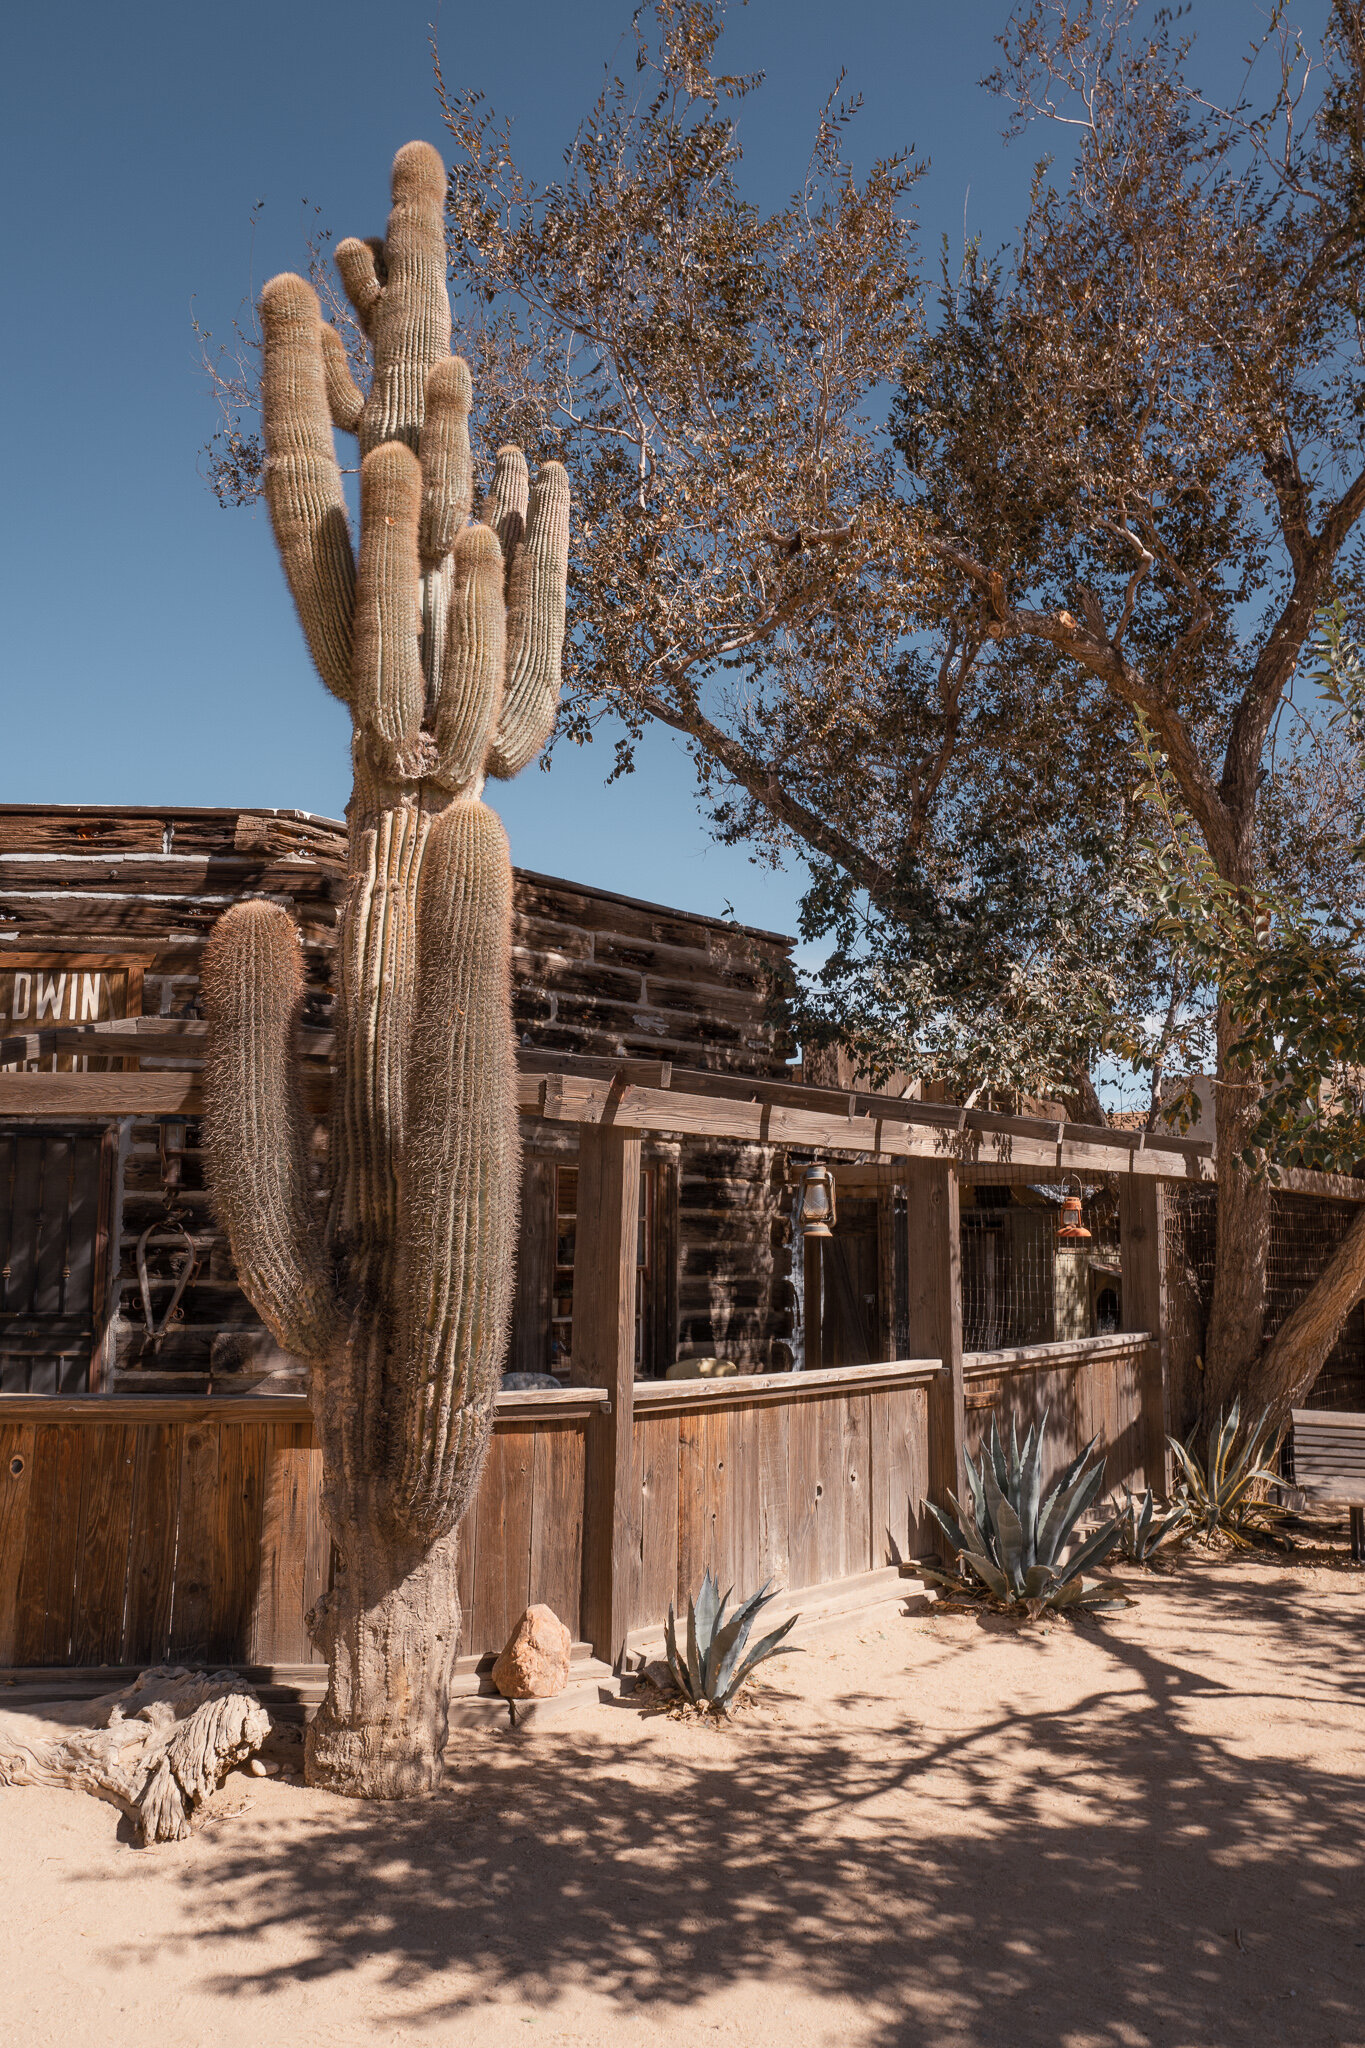 pioneer town in Joshua tree  Joshua tree guide by Julia friedman everyday with j